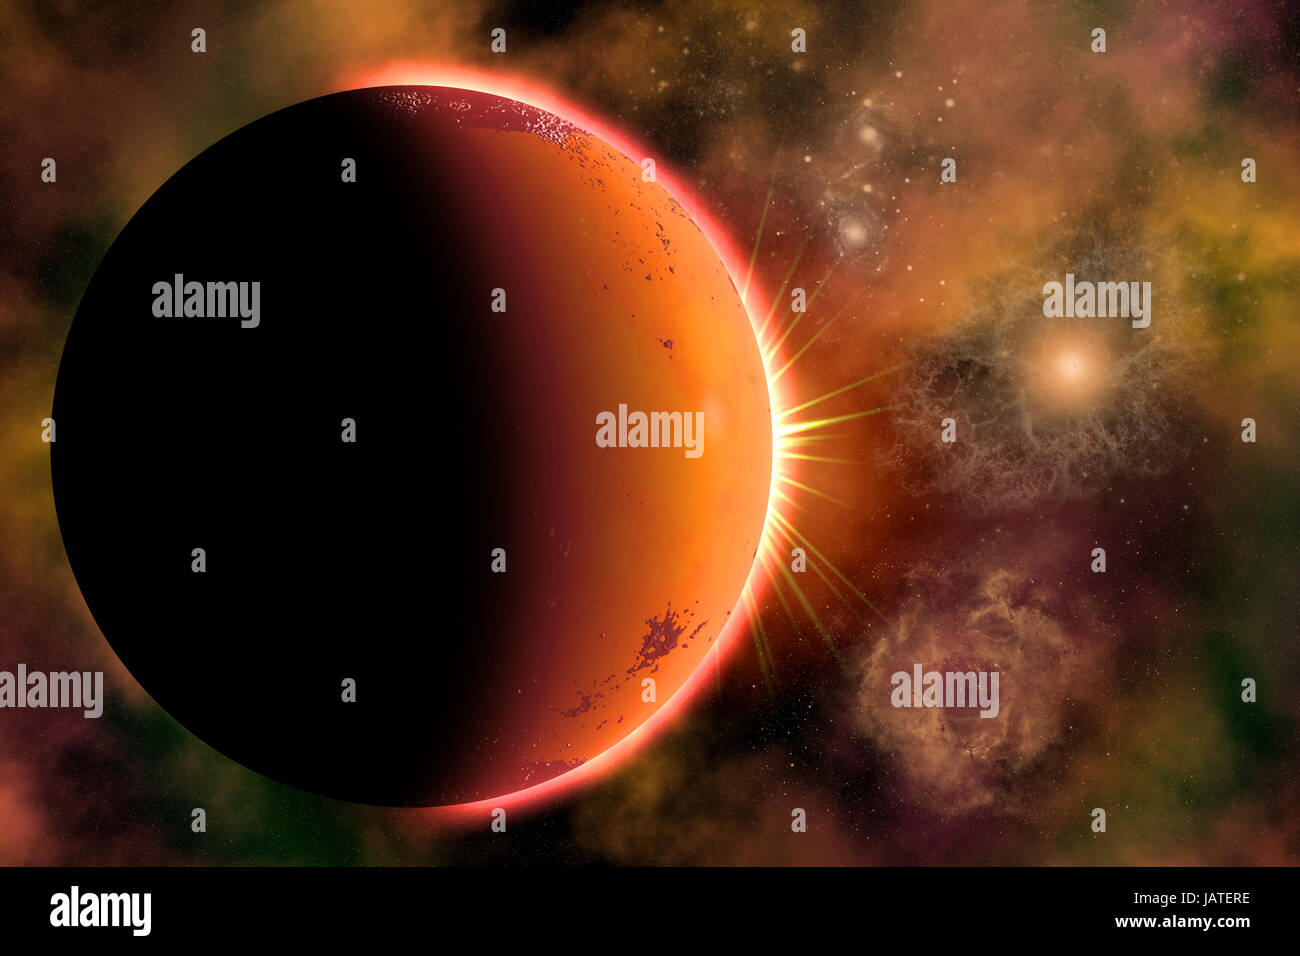 A Planet Orbiting A Binary Star System - Stock Image